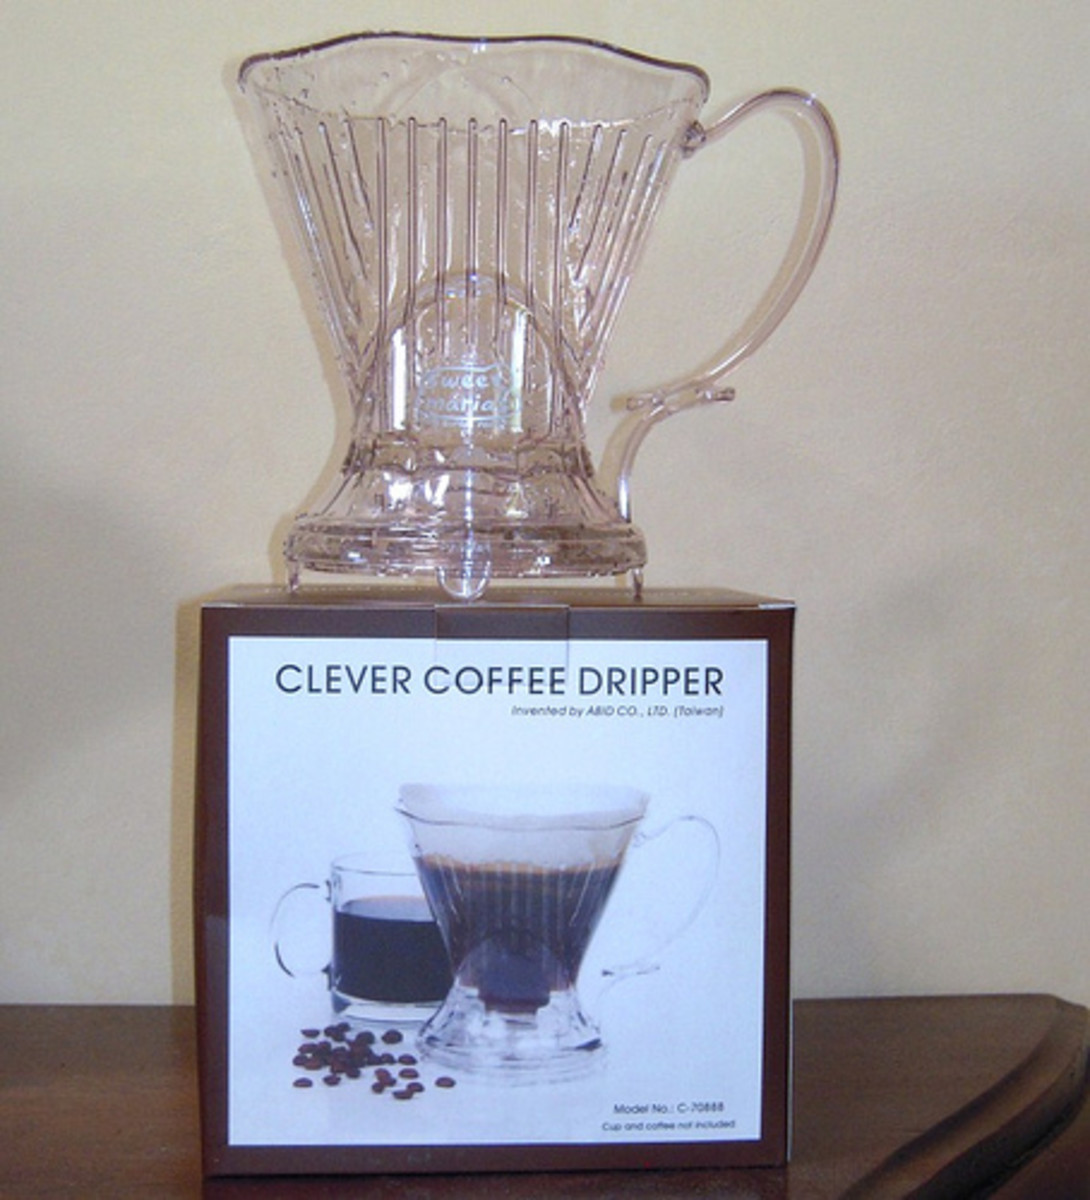 Abid's Clever Coffee Dripper